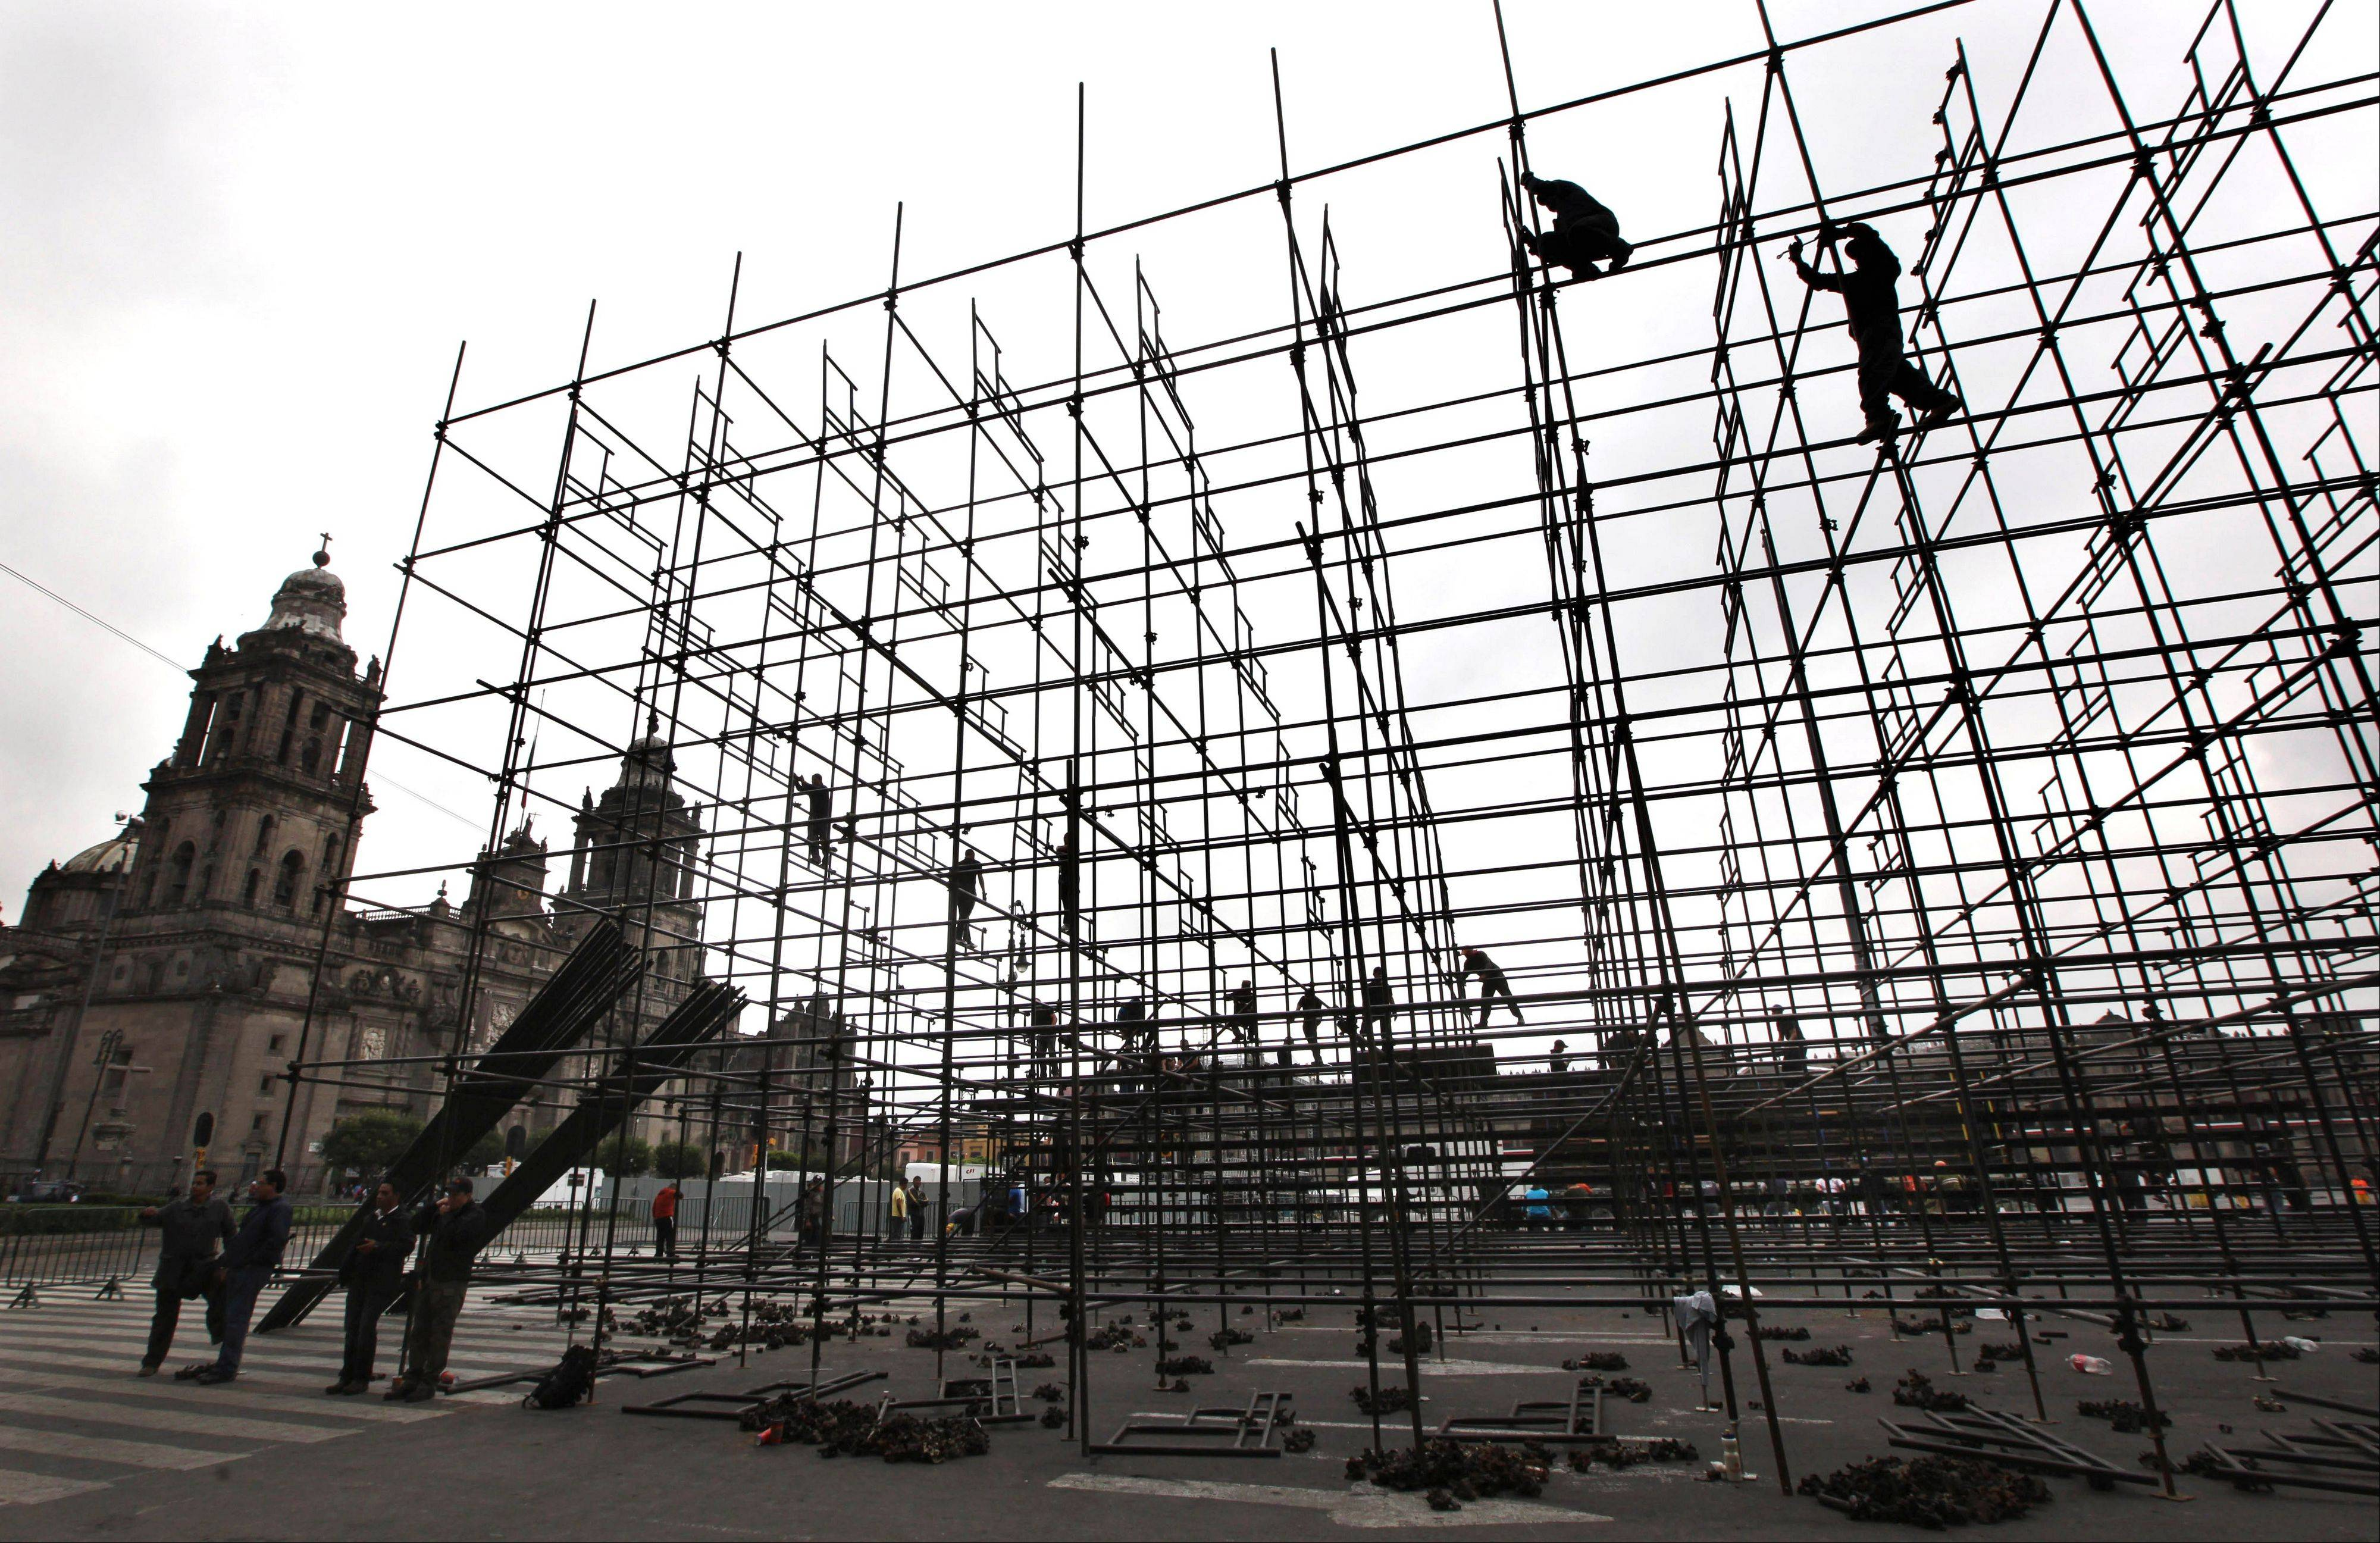 Workers build structures to be used for upcoming Independence Day celebrations in the Zocalo, where striking teachers were kicked out the previous day in Mexico City.